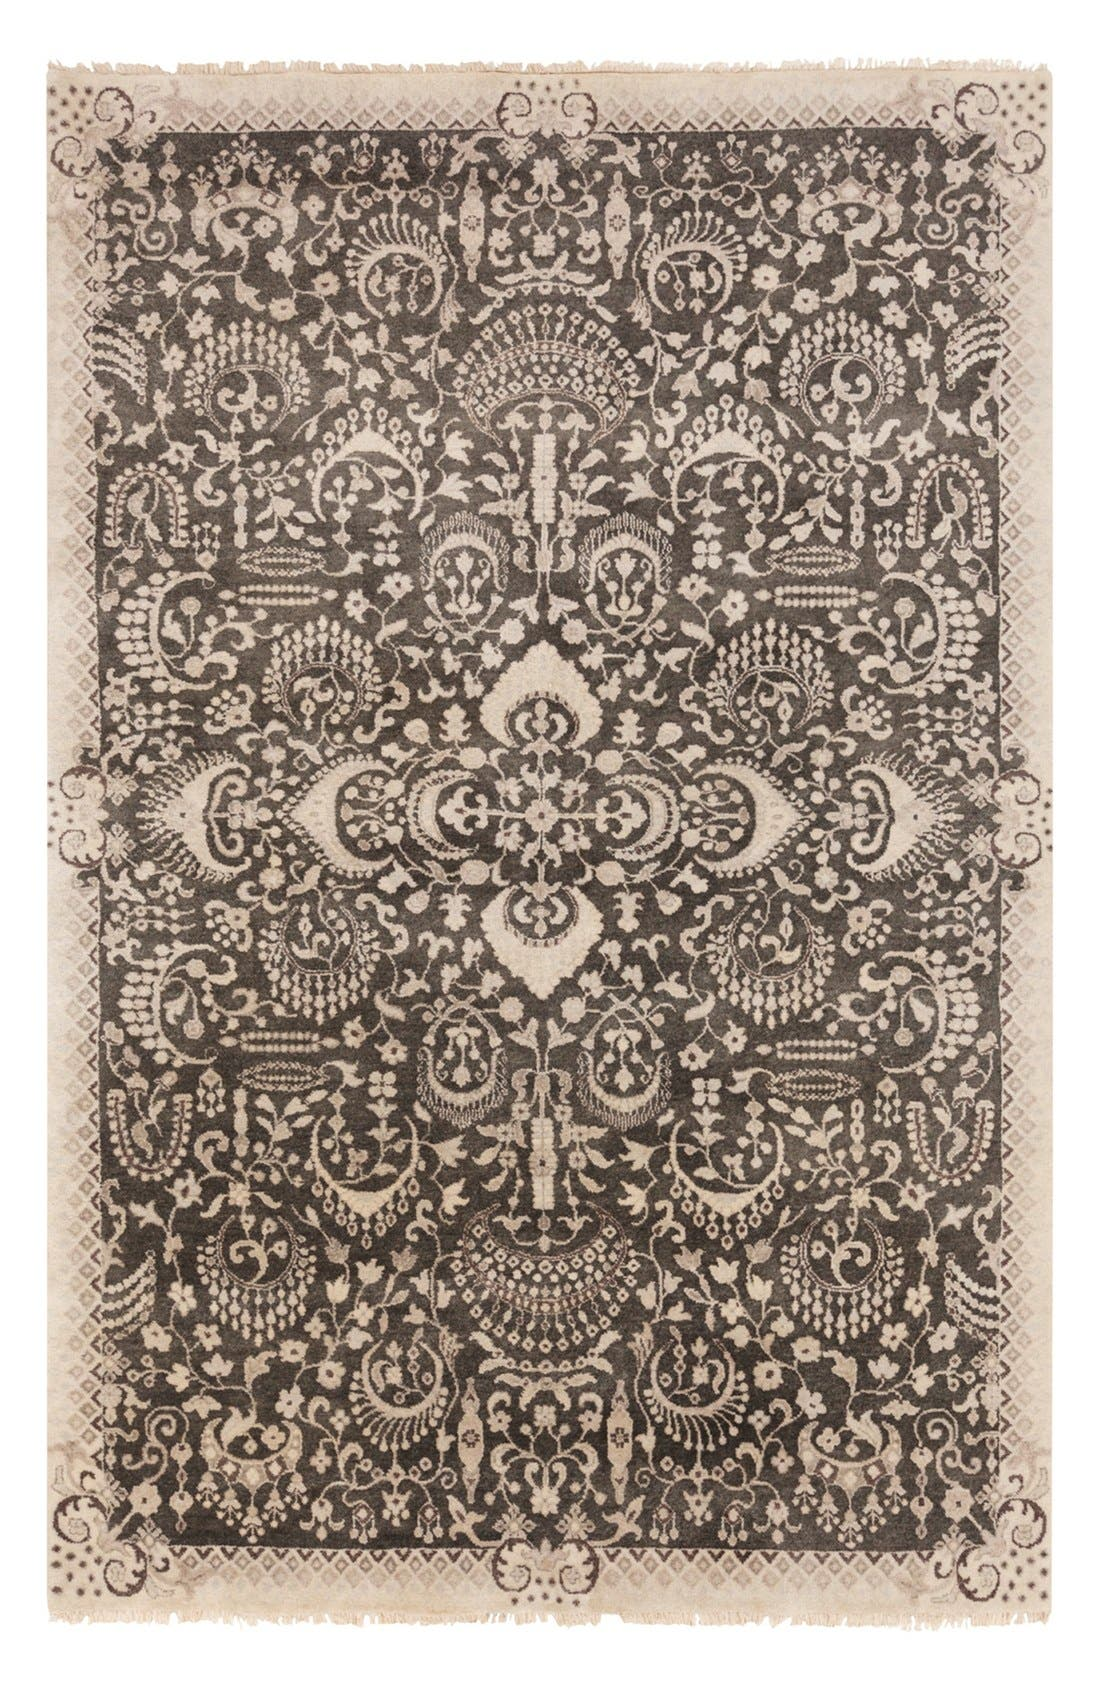 'Empress' Wool Rug,                             Main thumbnail 1, color,                             Ivory/ Black Multi